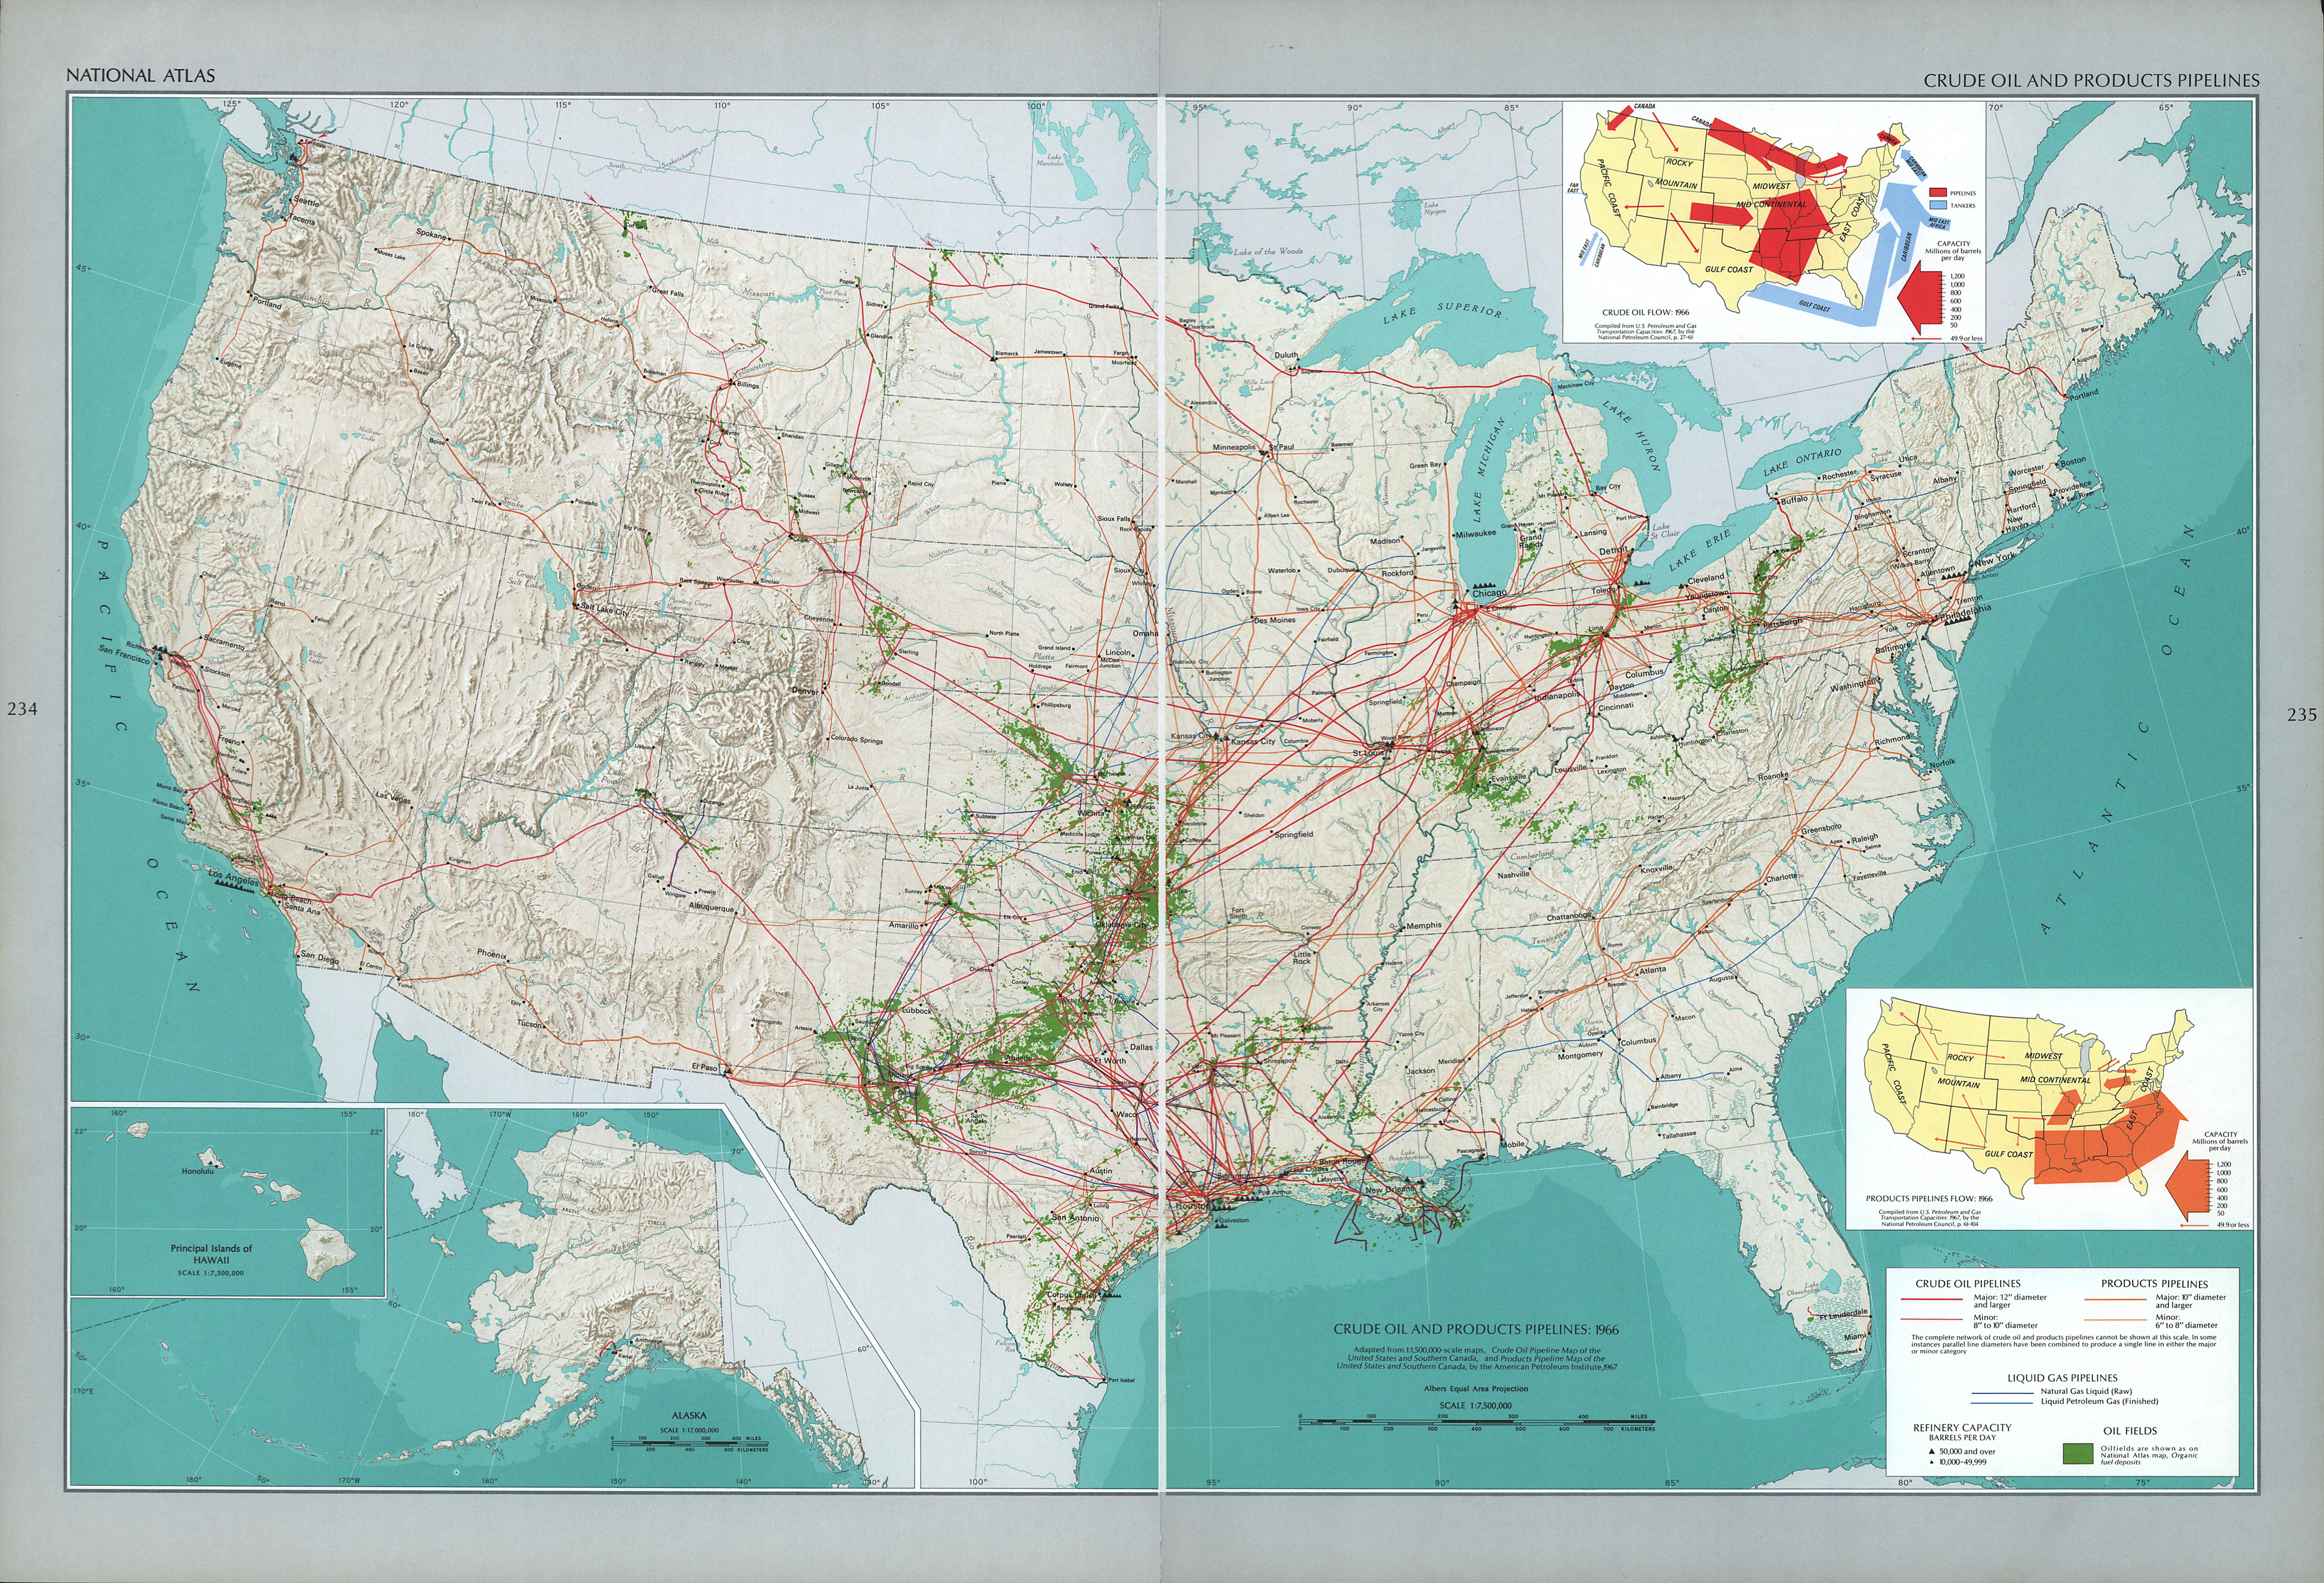 United States Crude Oil and Products Pipelines 1970